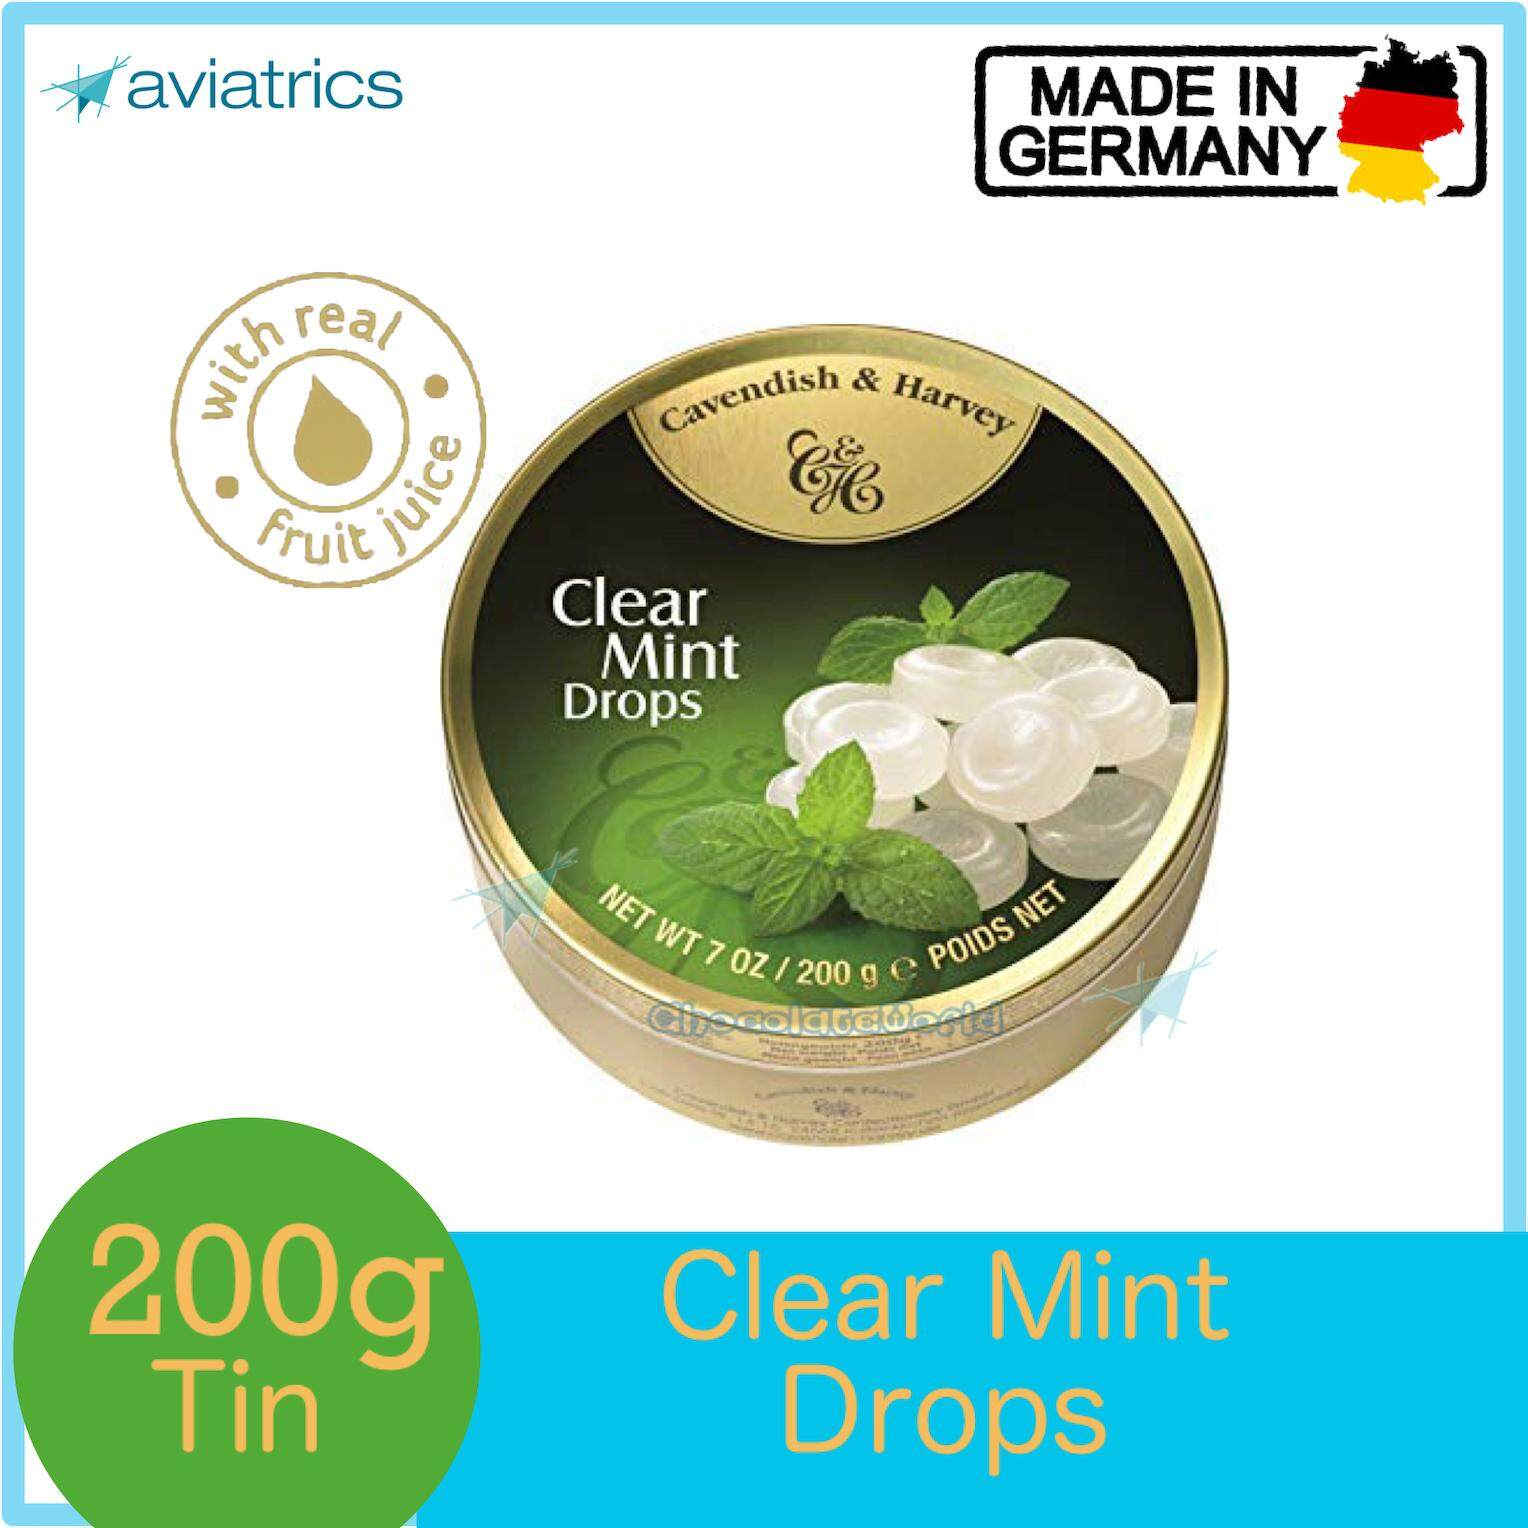 Cavendish Harvey Clear Mint Drops 200g (Made in Germany)